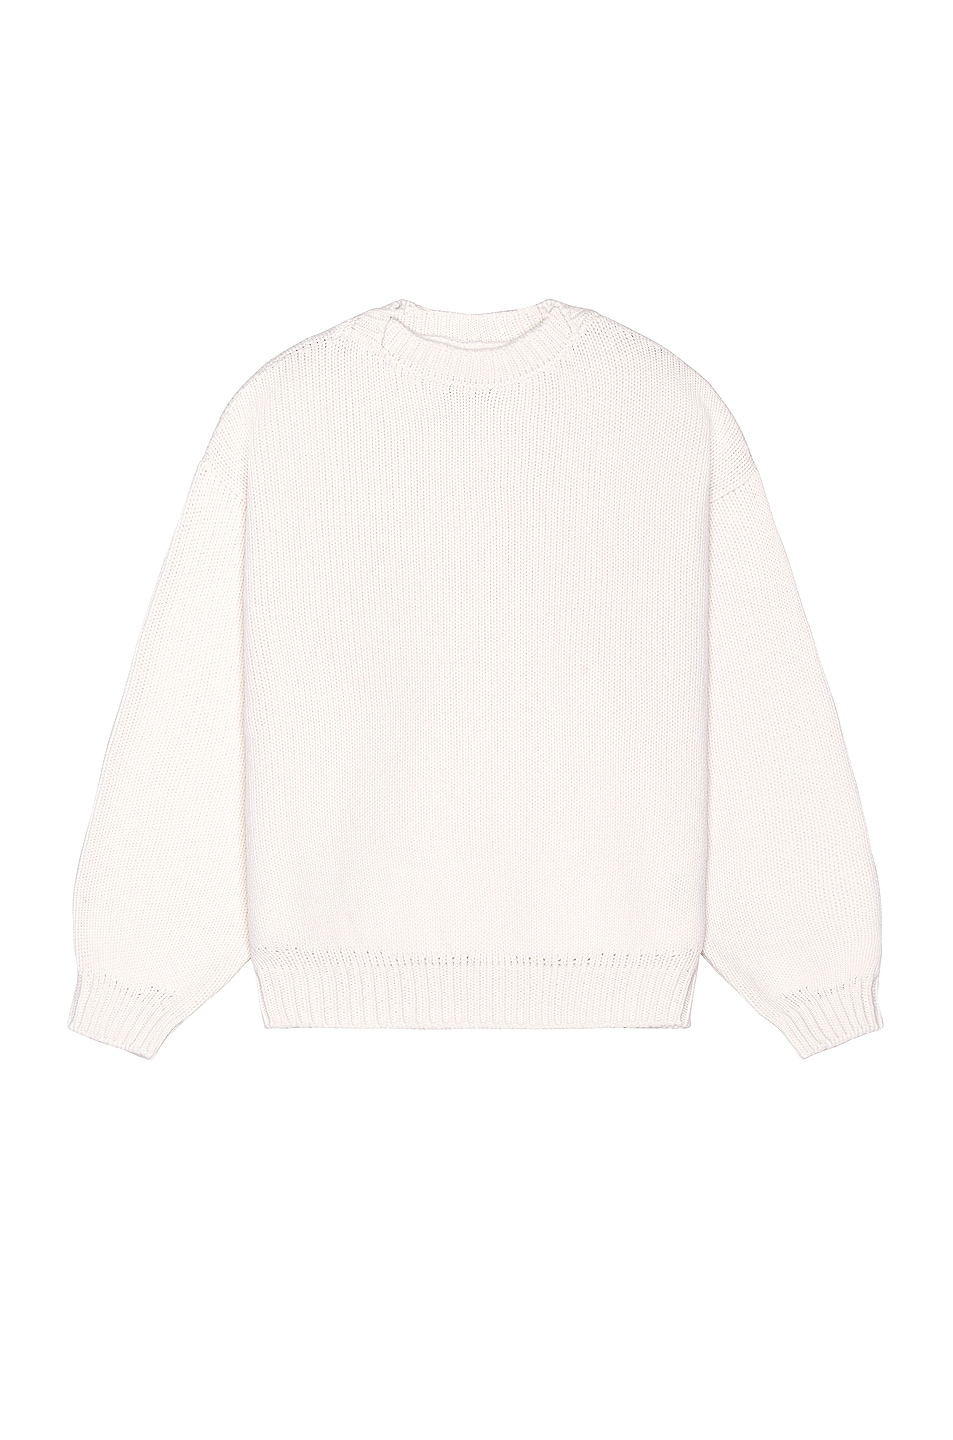 Image 1 of Fear of God Overlap Wool Sweater in White